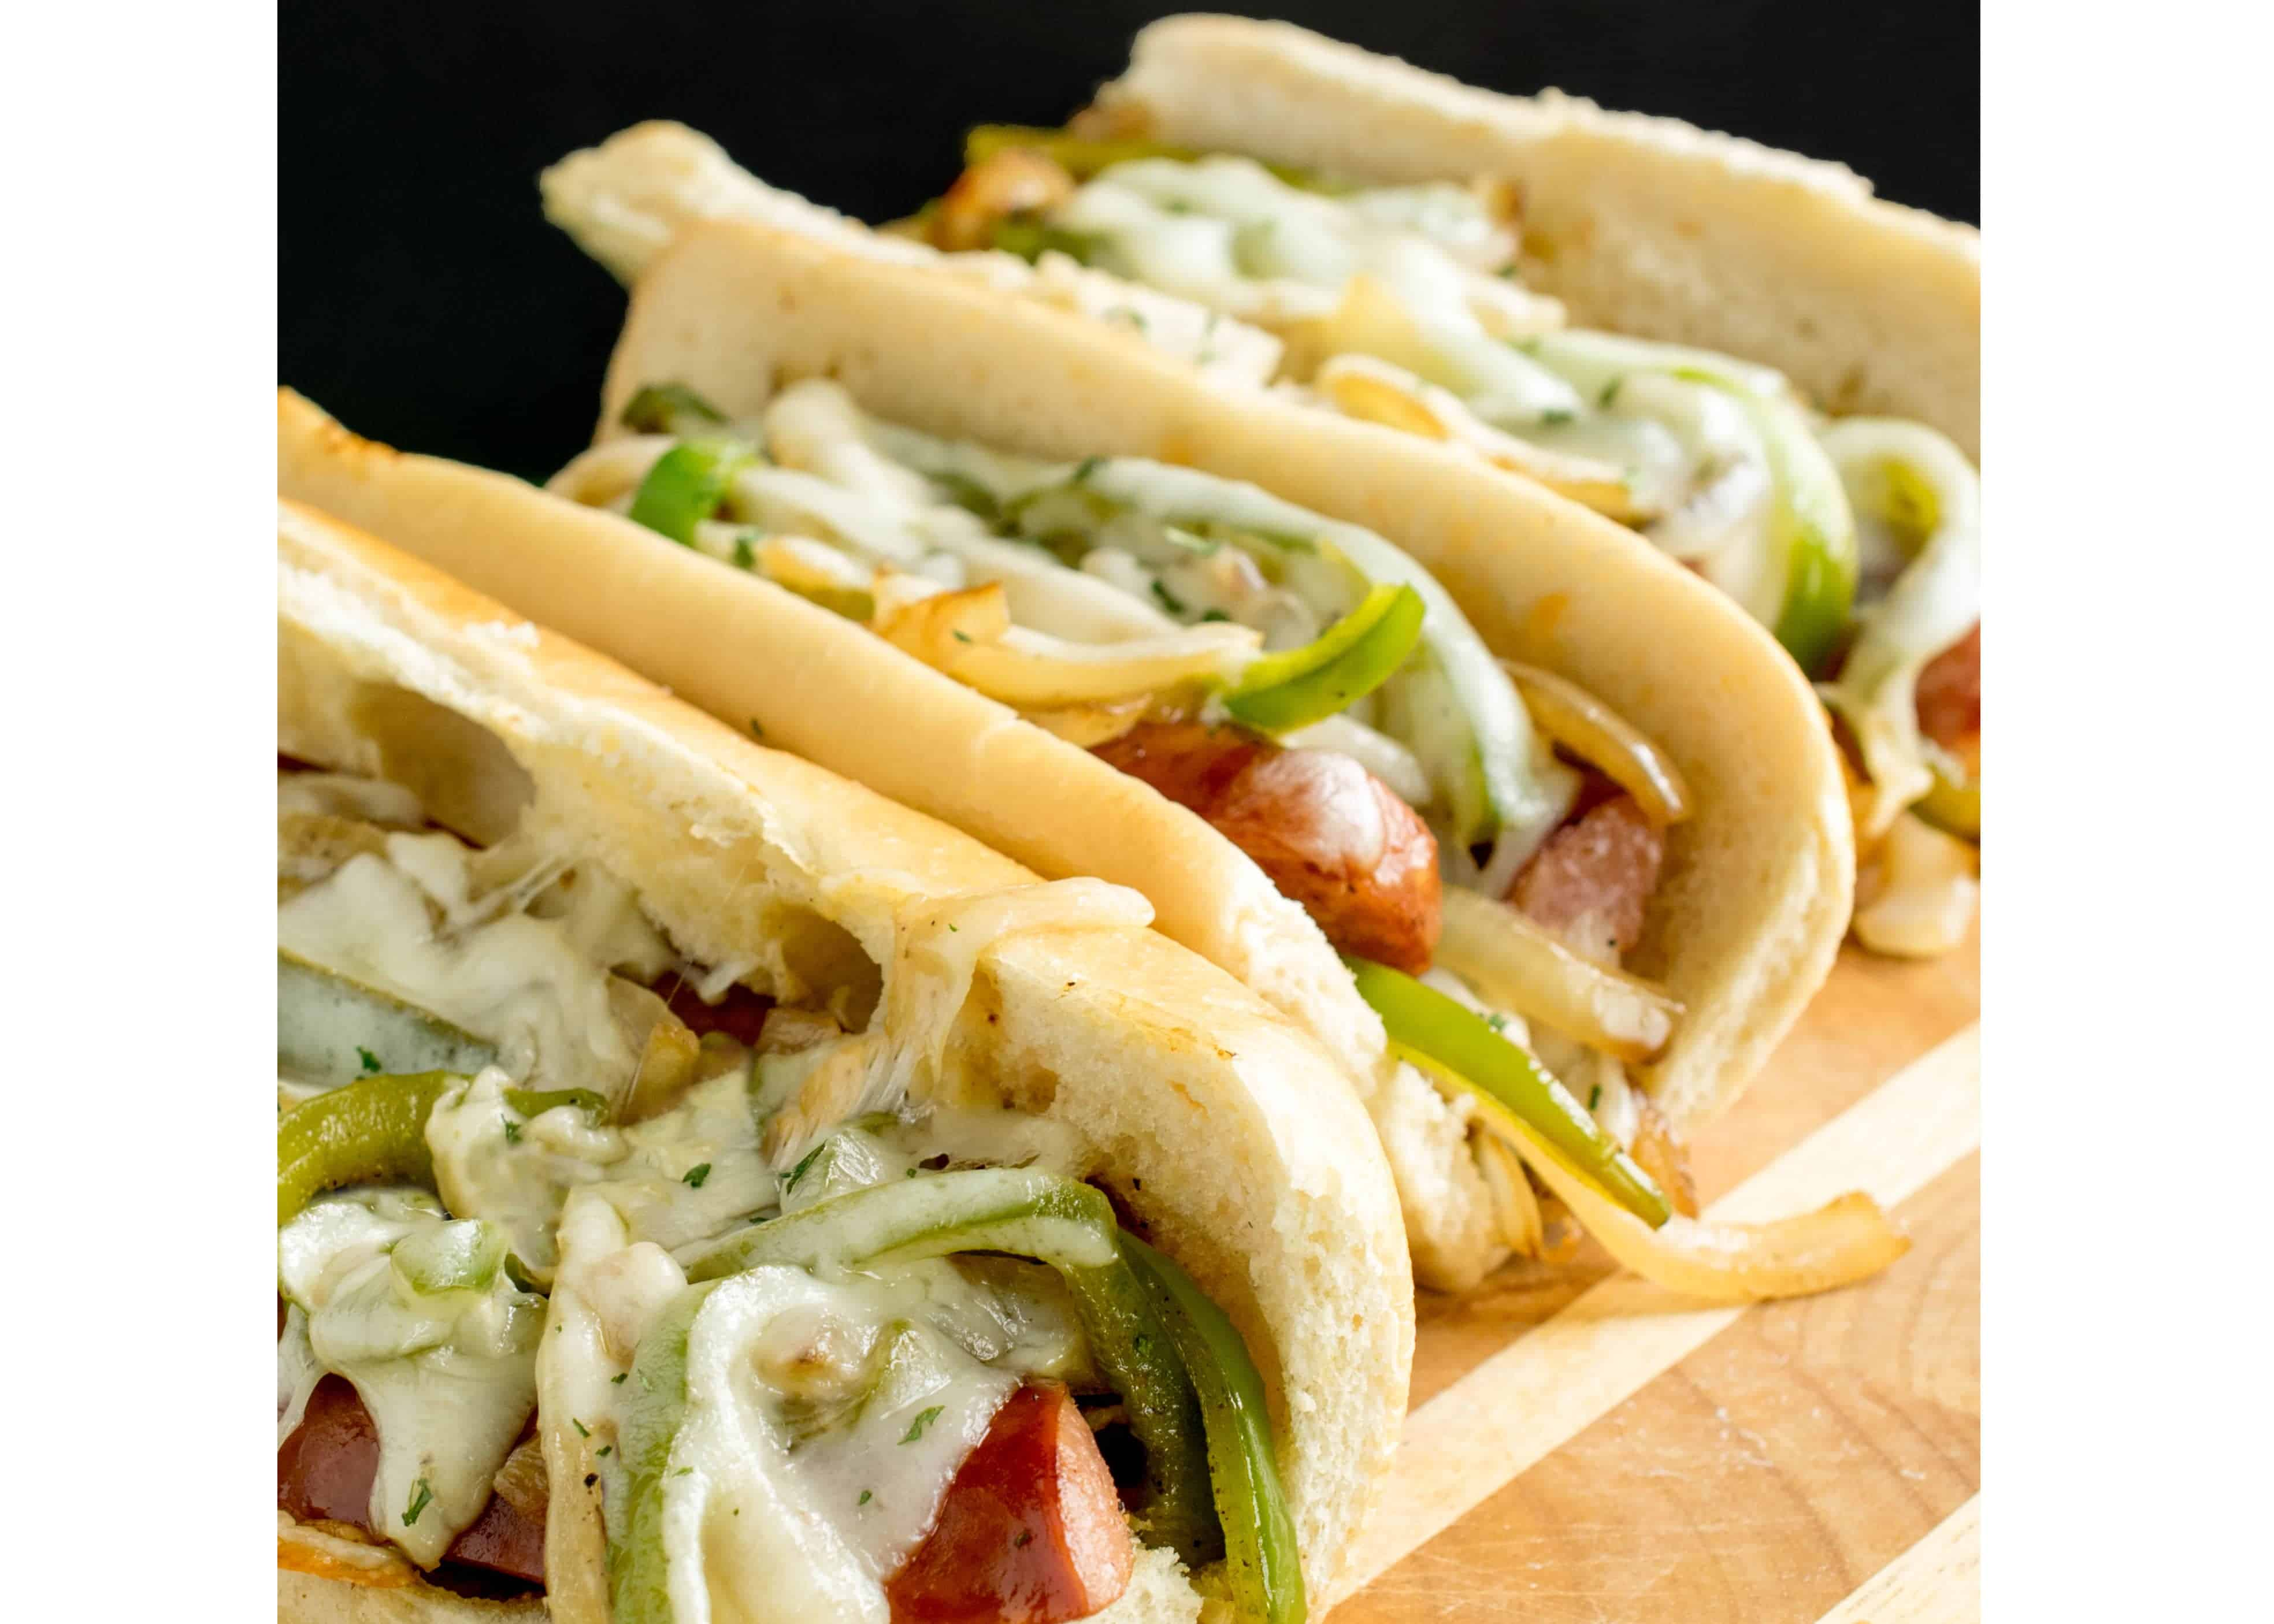 Kielbasa Sandwiches with Peppers and Onions